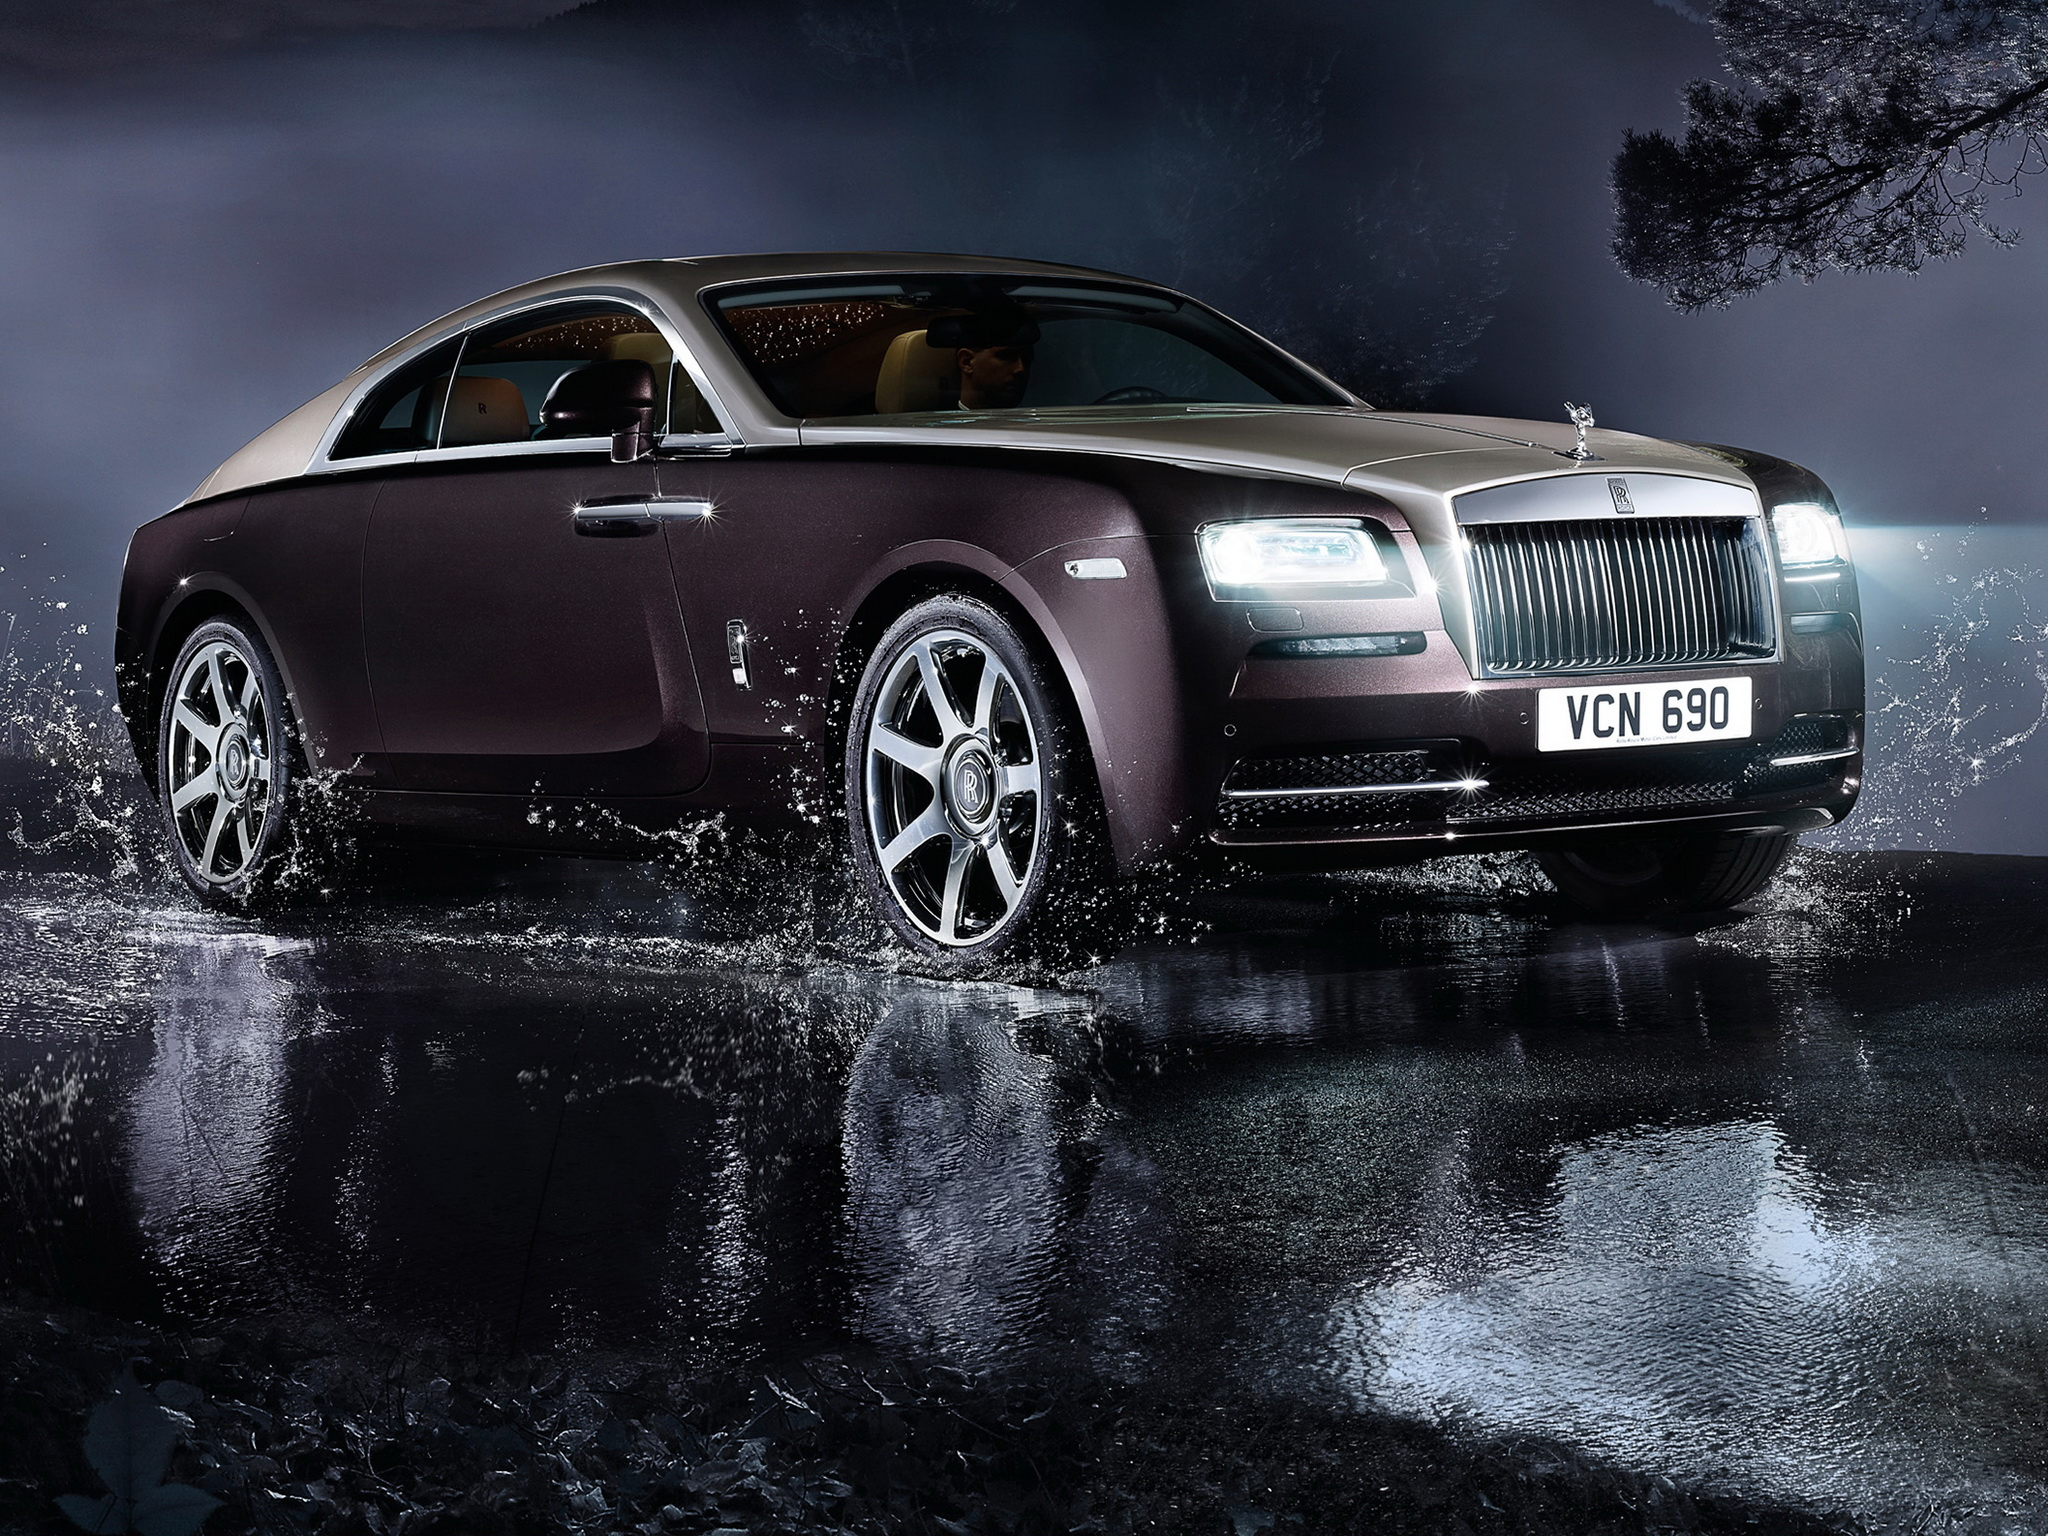 2013 Rolls Royce Wraith luxury supercar re wallpaper | 2048x1536